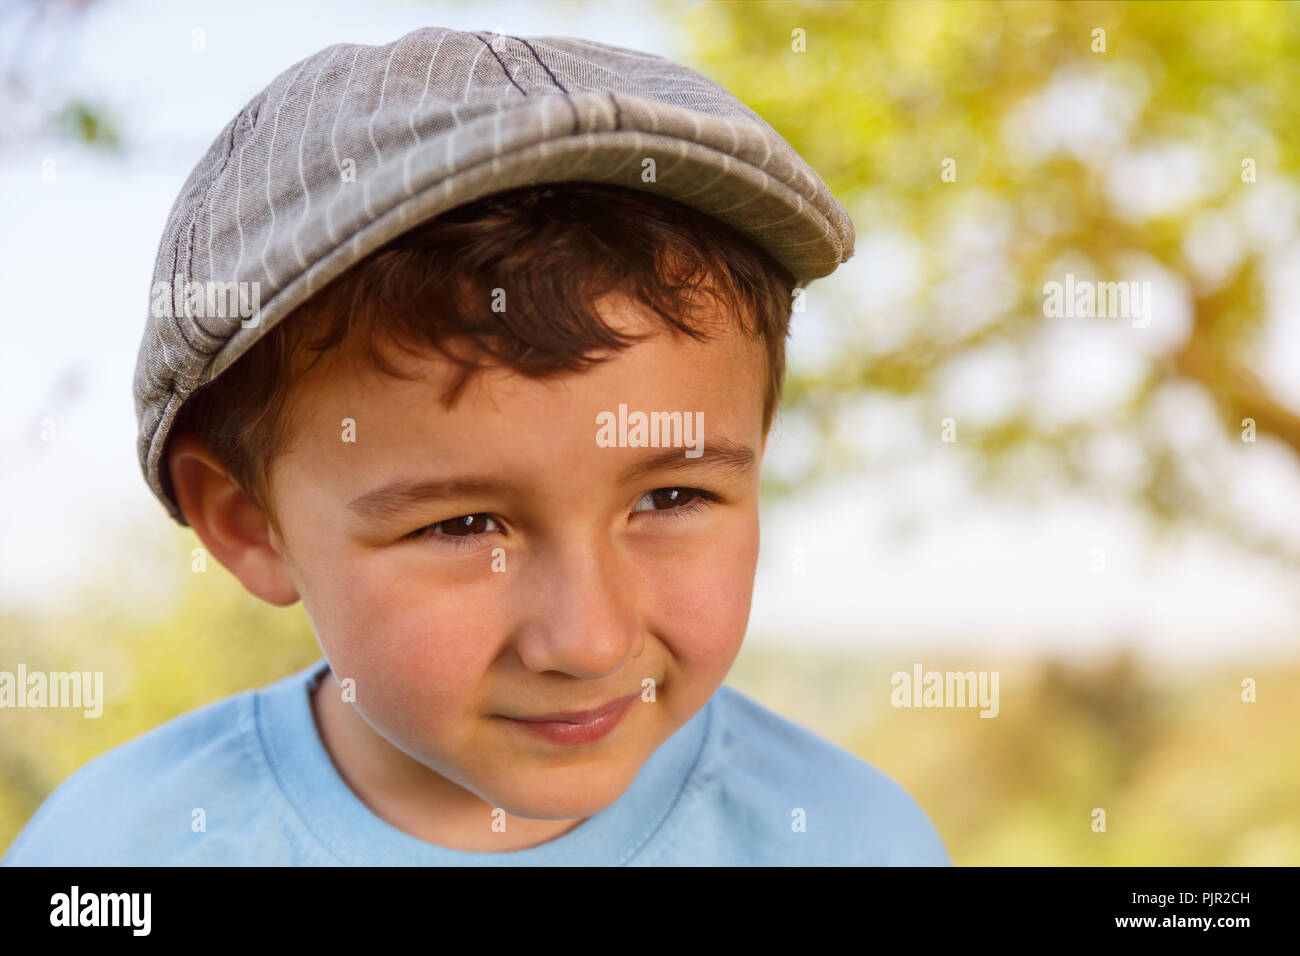 Child kid little boy portrait outdoor copyspace looking to the side with cap nature - Stock Image